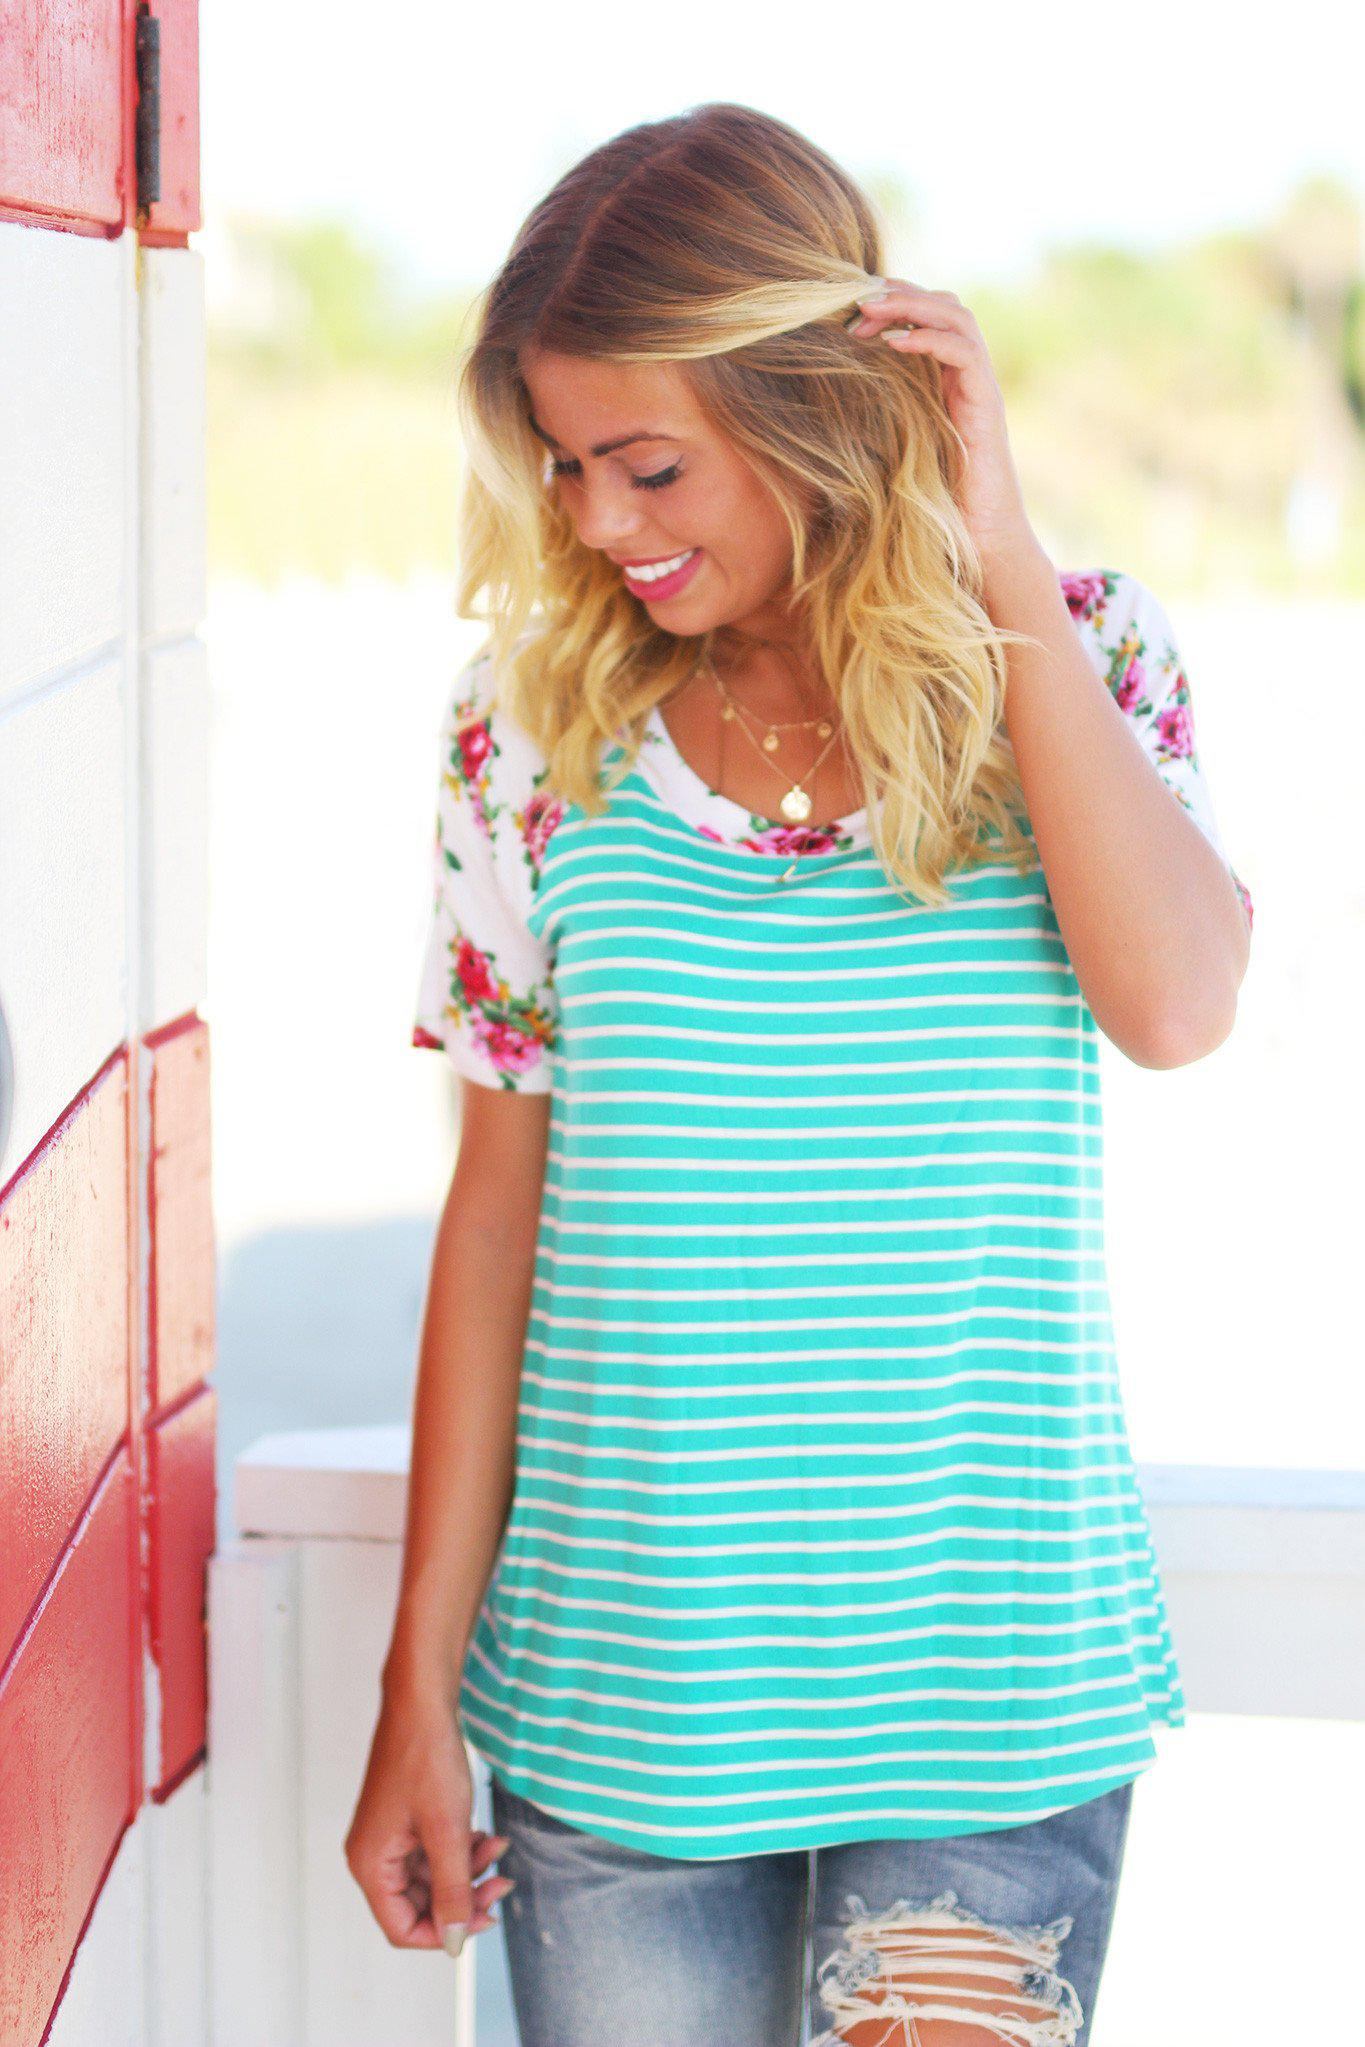 Mint Striped Top with Floral Sleeves